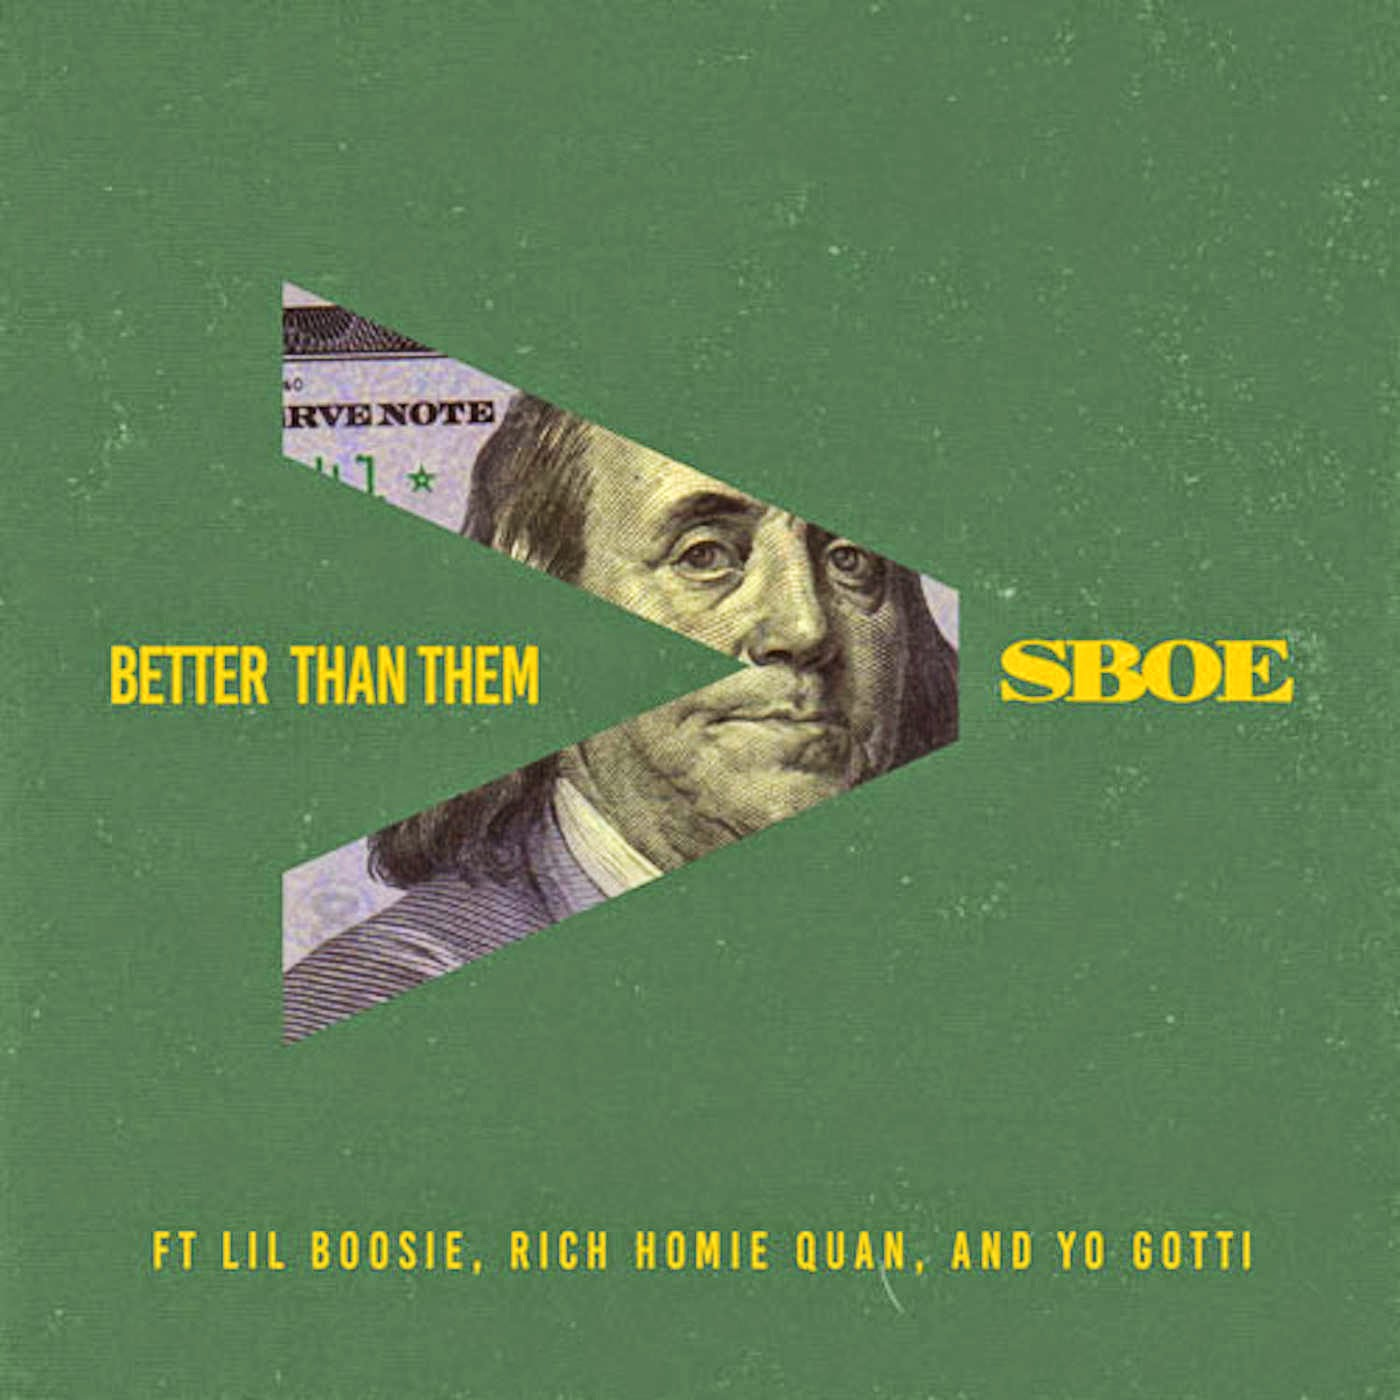 S.B.O.E - Better Than Them (feat. Lil Boosie, Rich Homie Quan & Yo Gotti) - Single Cover